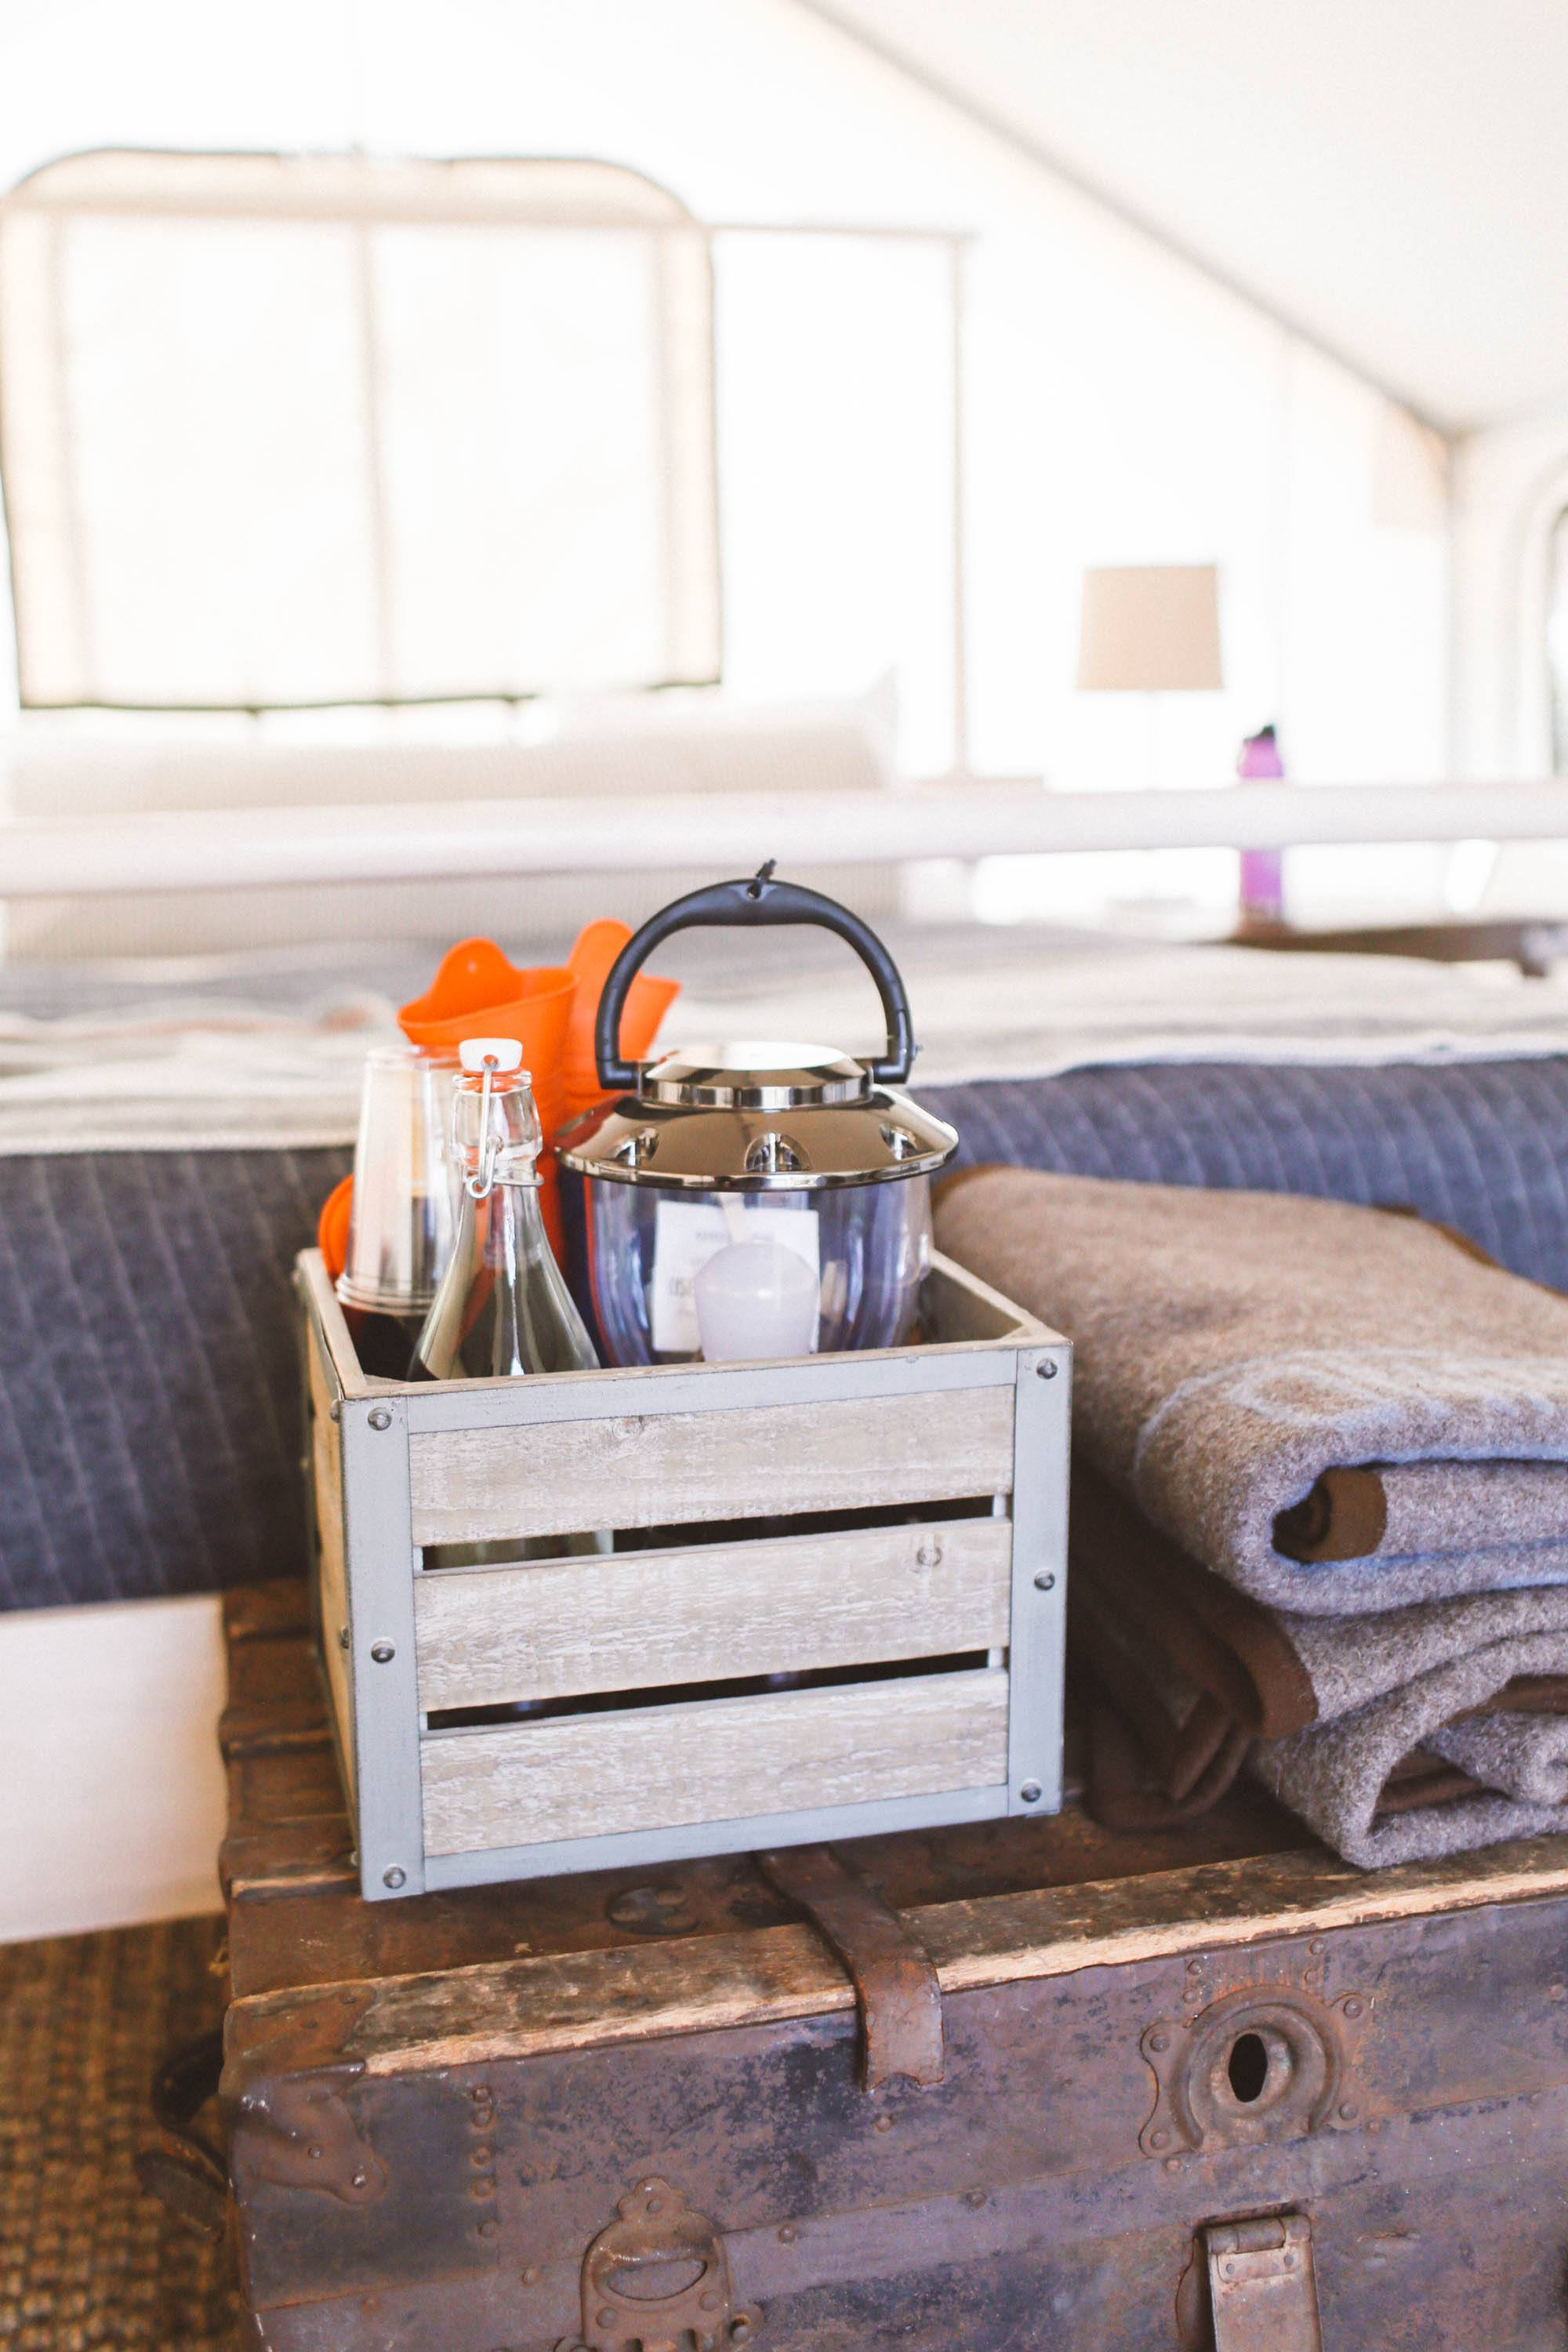 wooden crate with ammenities and towels sitting on wooden chest in tent